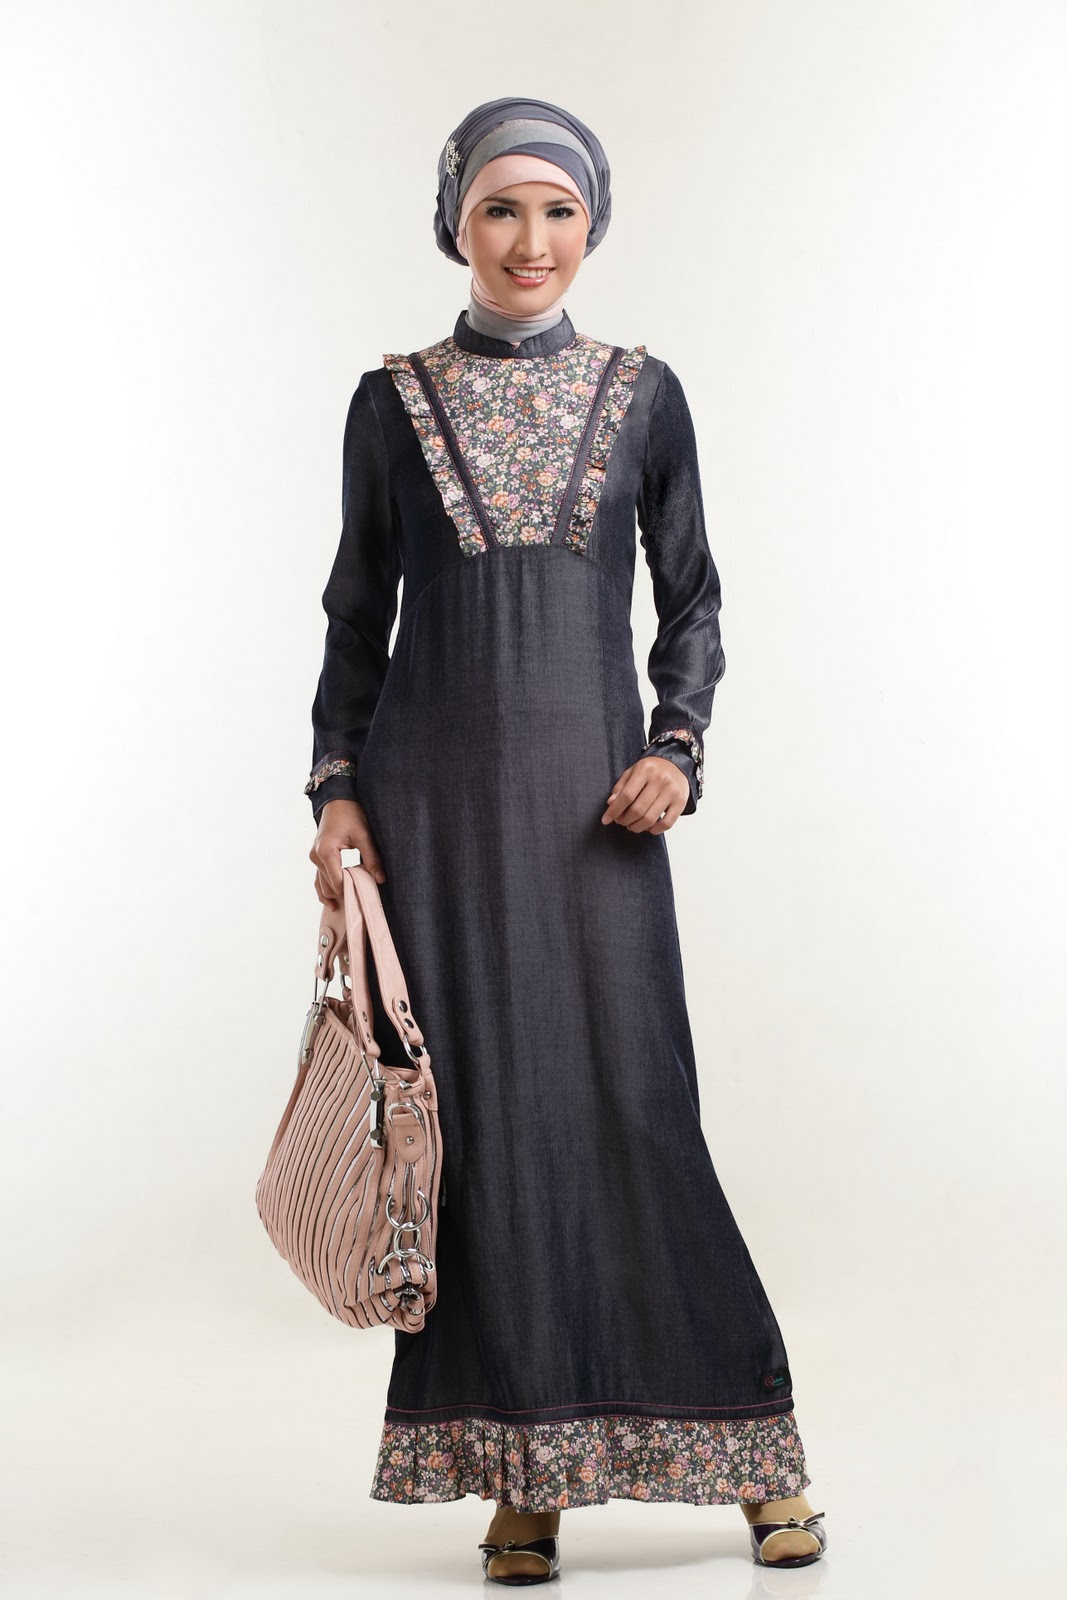 Image Result For Model Gamis Hitam Polos Kombinasi